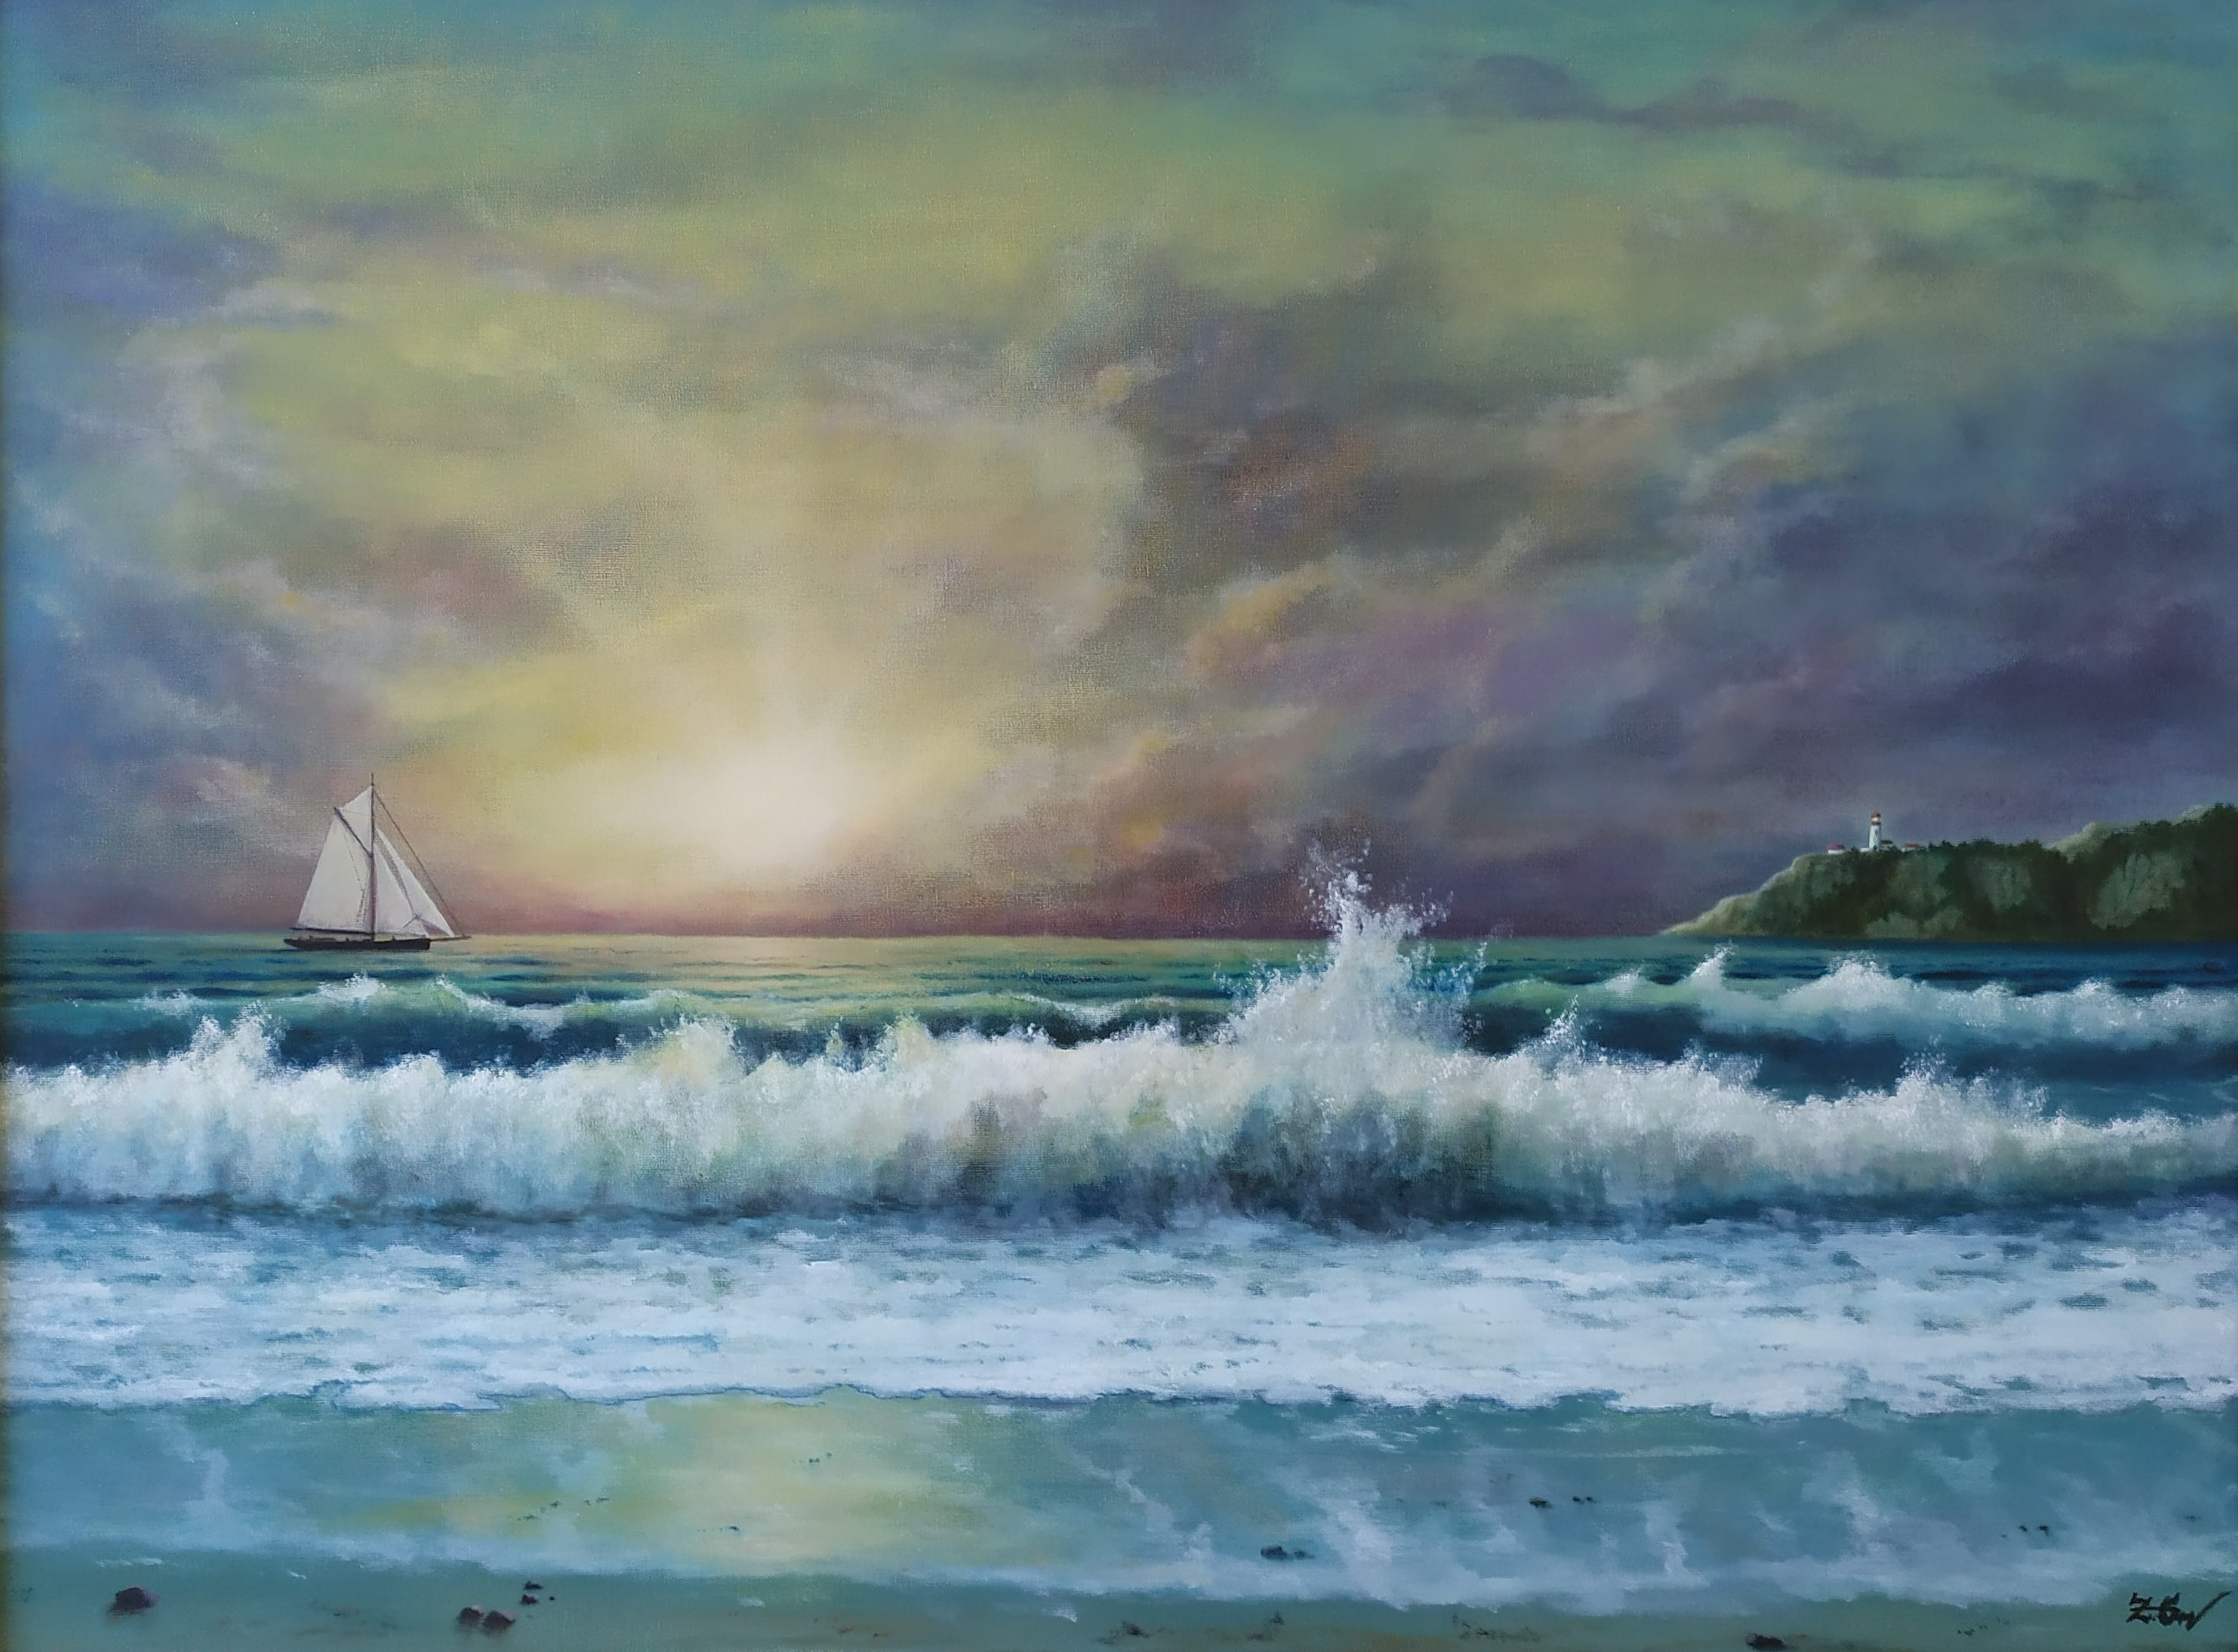 ''Evening mood with playful waves''